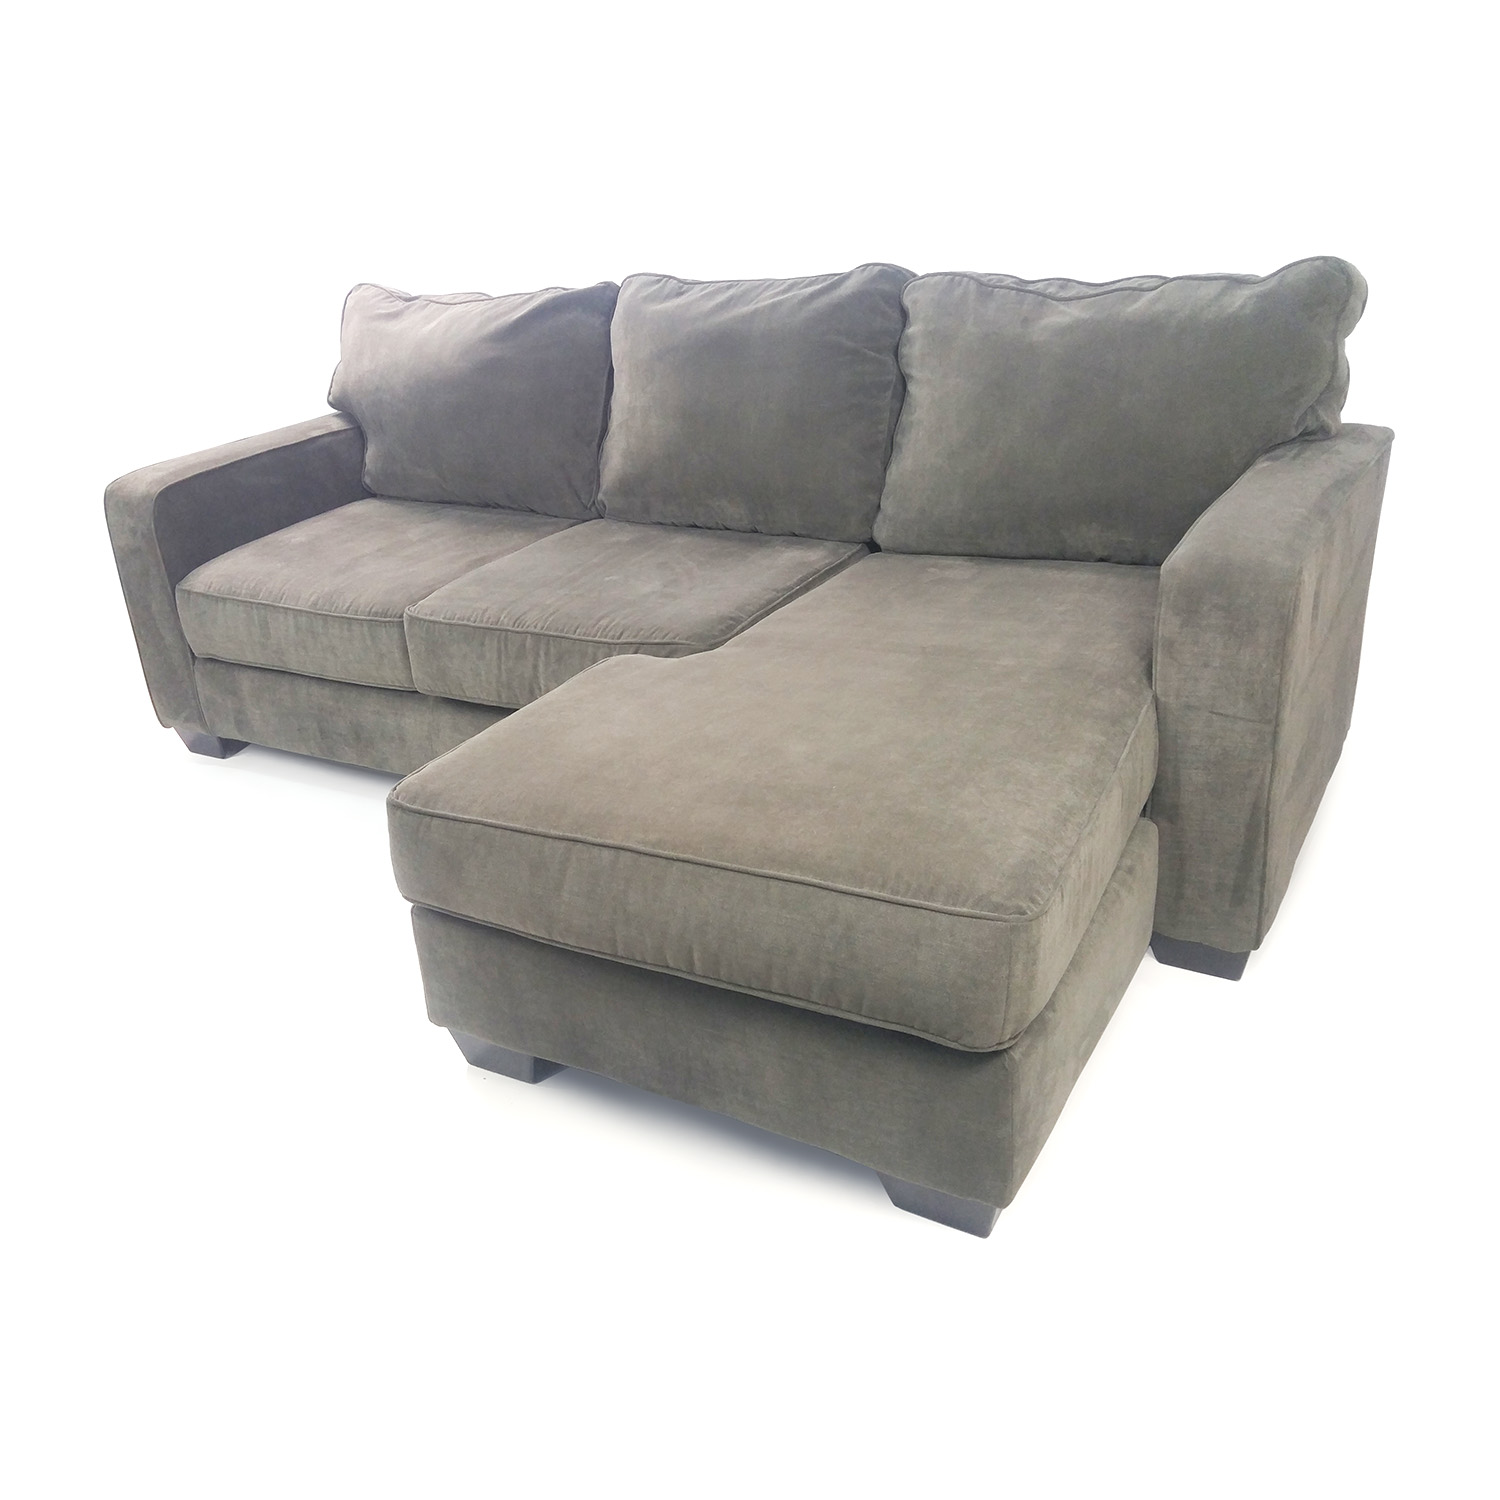 Hodan sofa chaise hodan marble sofa chaise signature for Ashley sectional with chaise